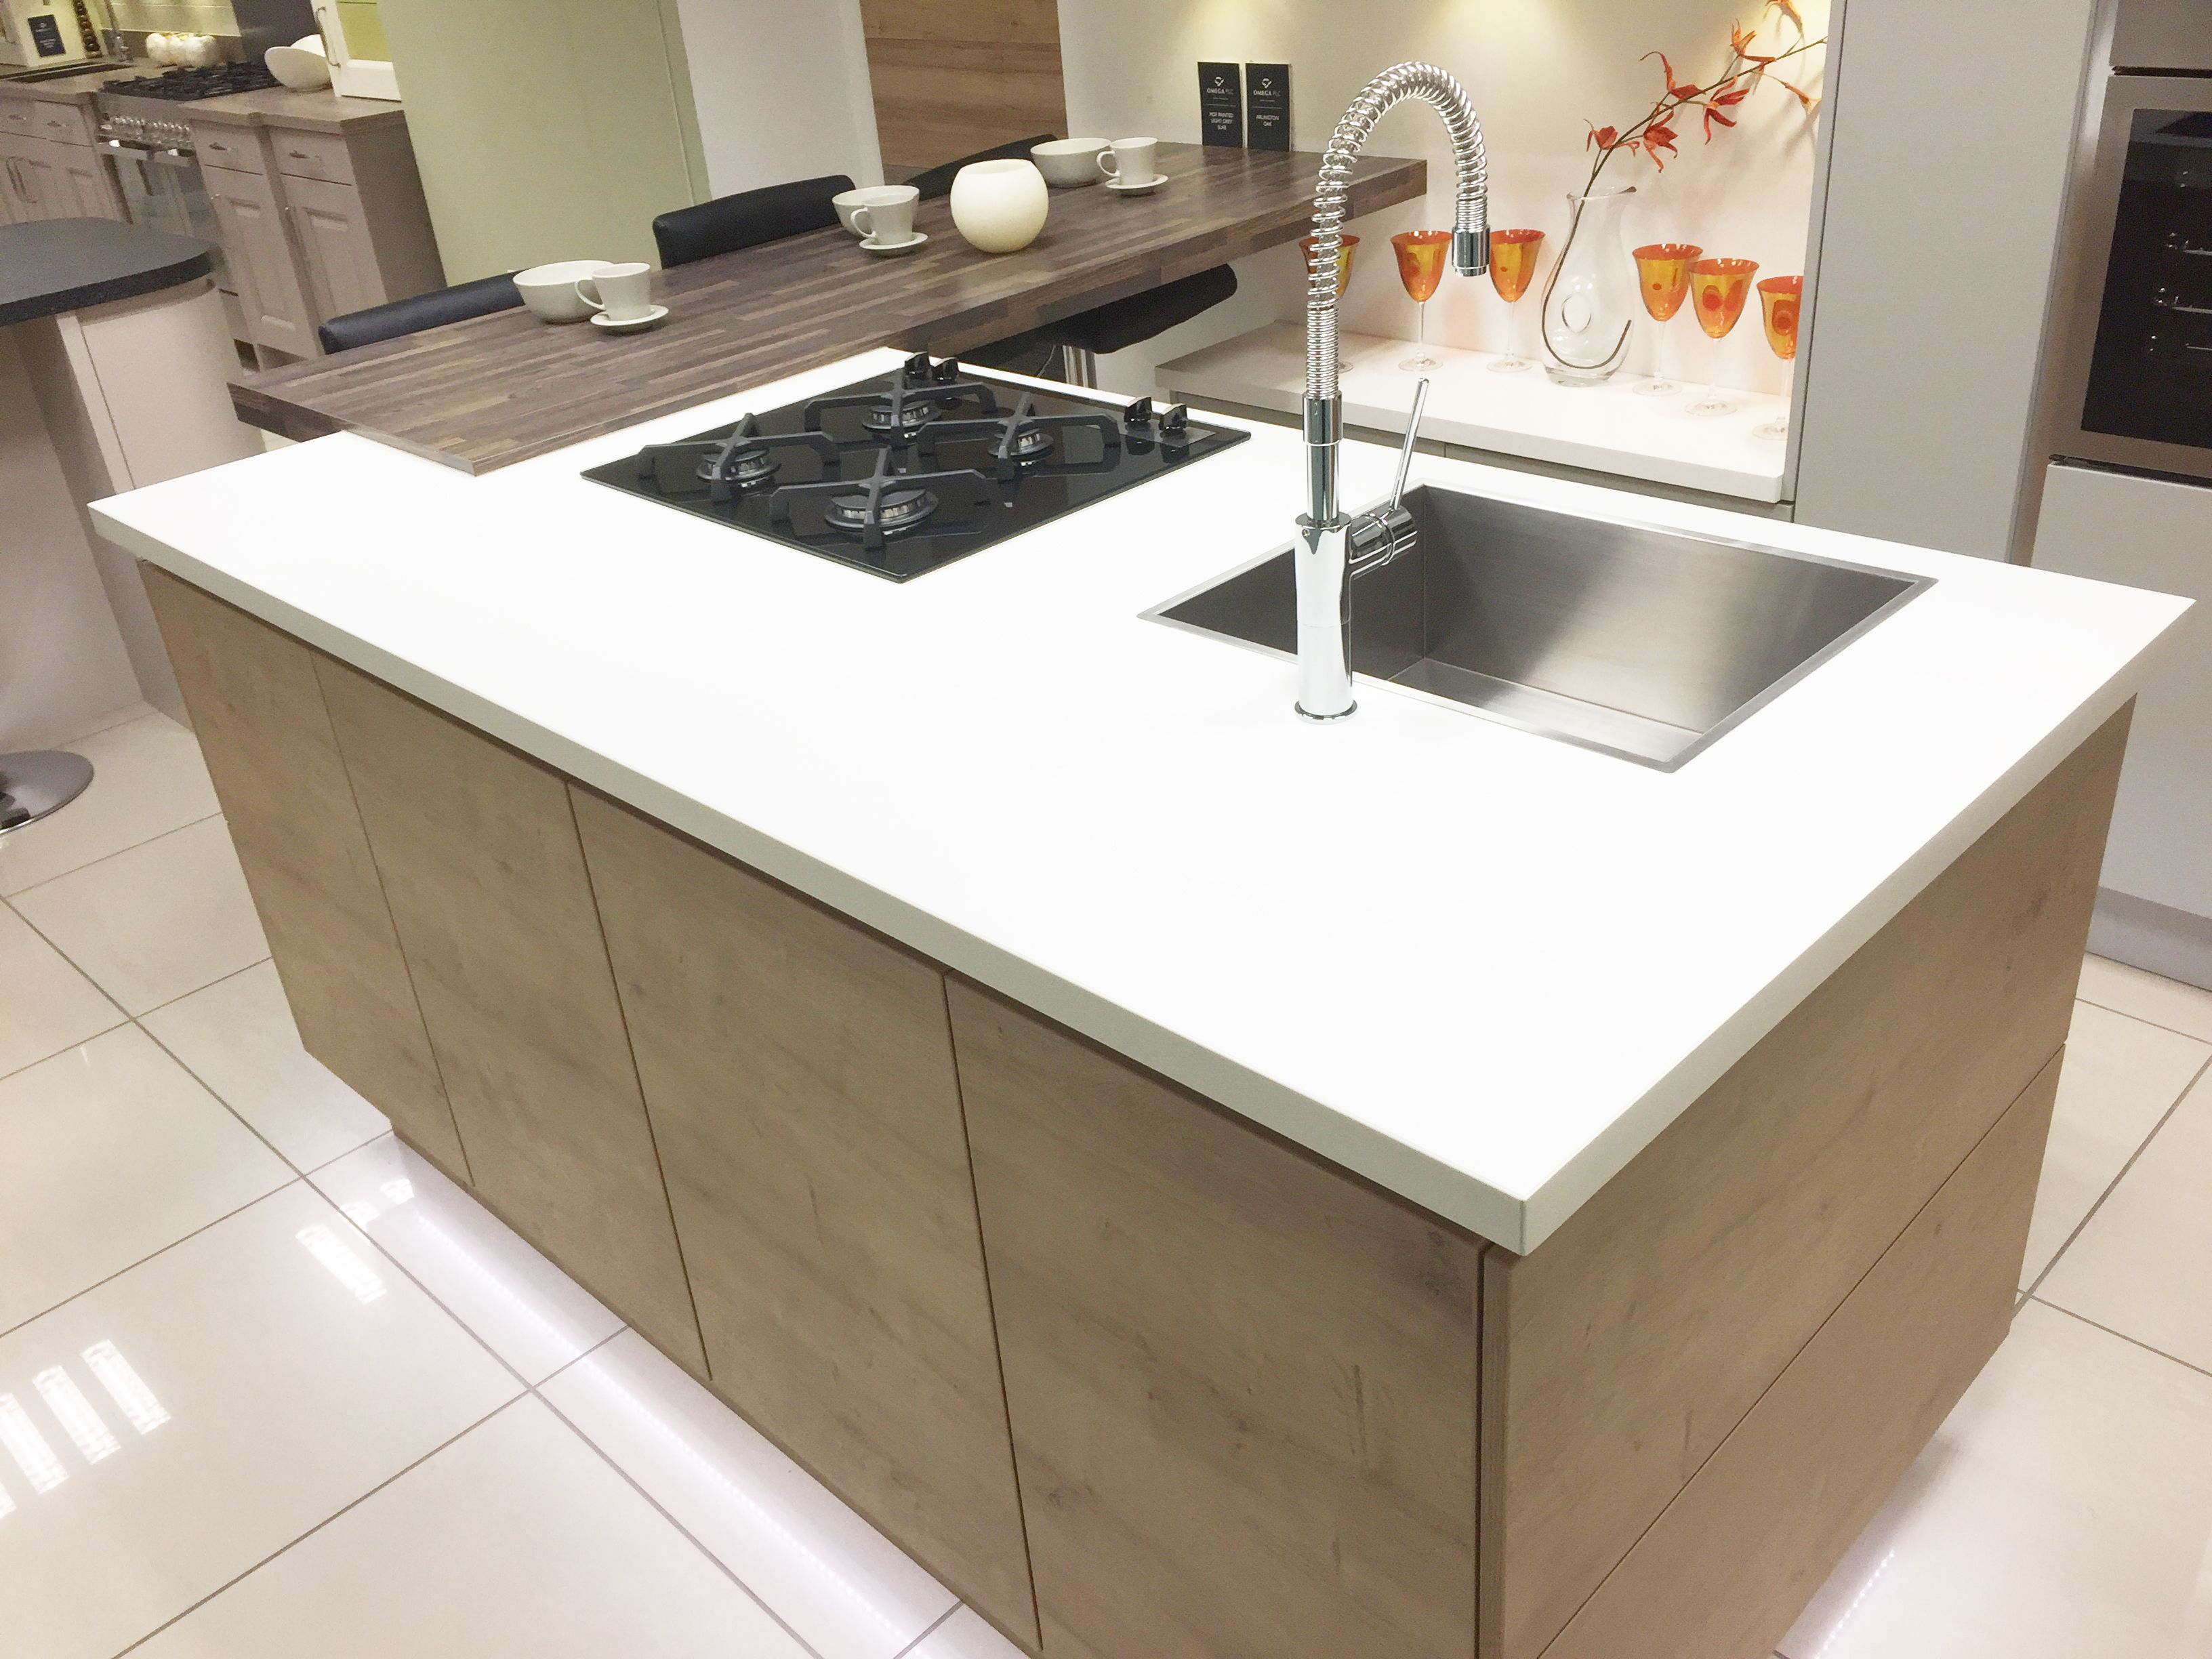 Kitchen Islands Uk Small Table Sets Modern Island With Hob Sink And Breakfast Bar Area Www Erkitchens Co